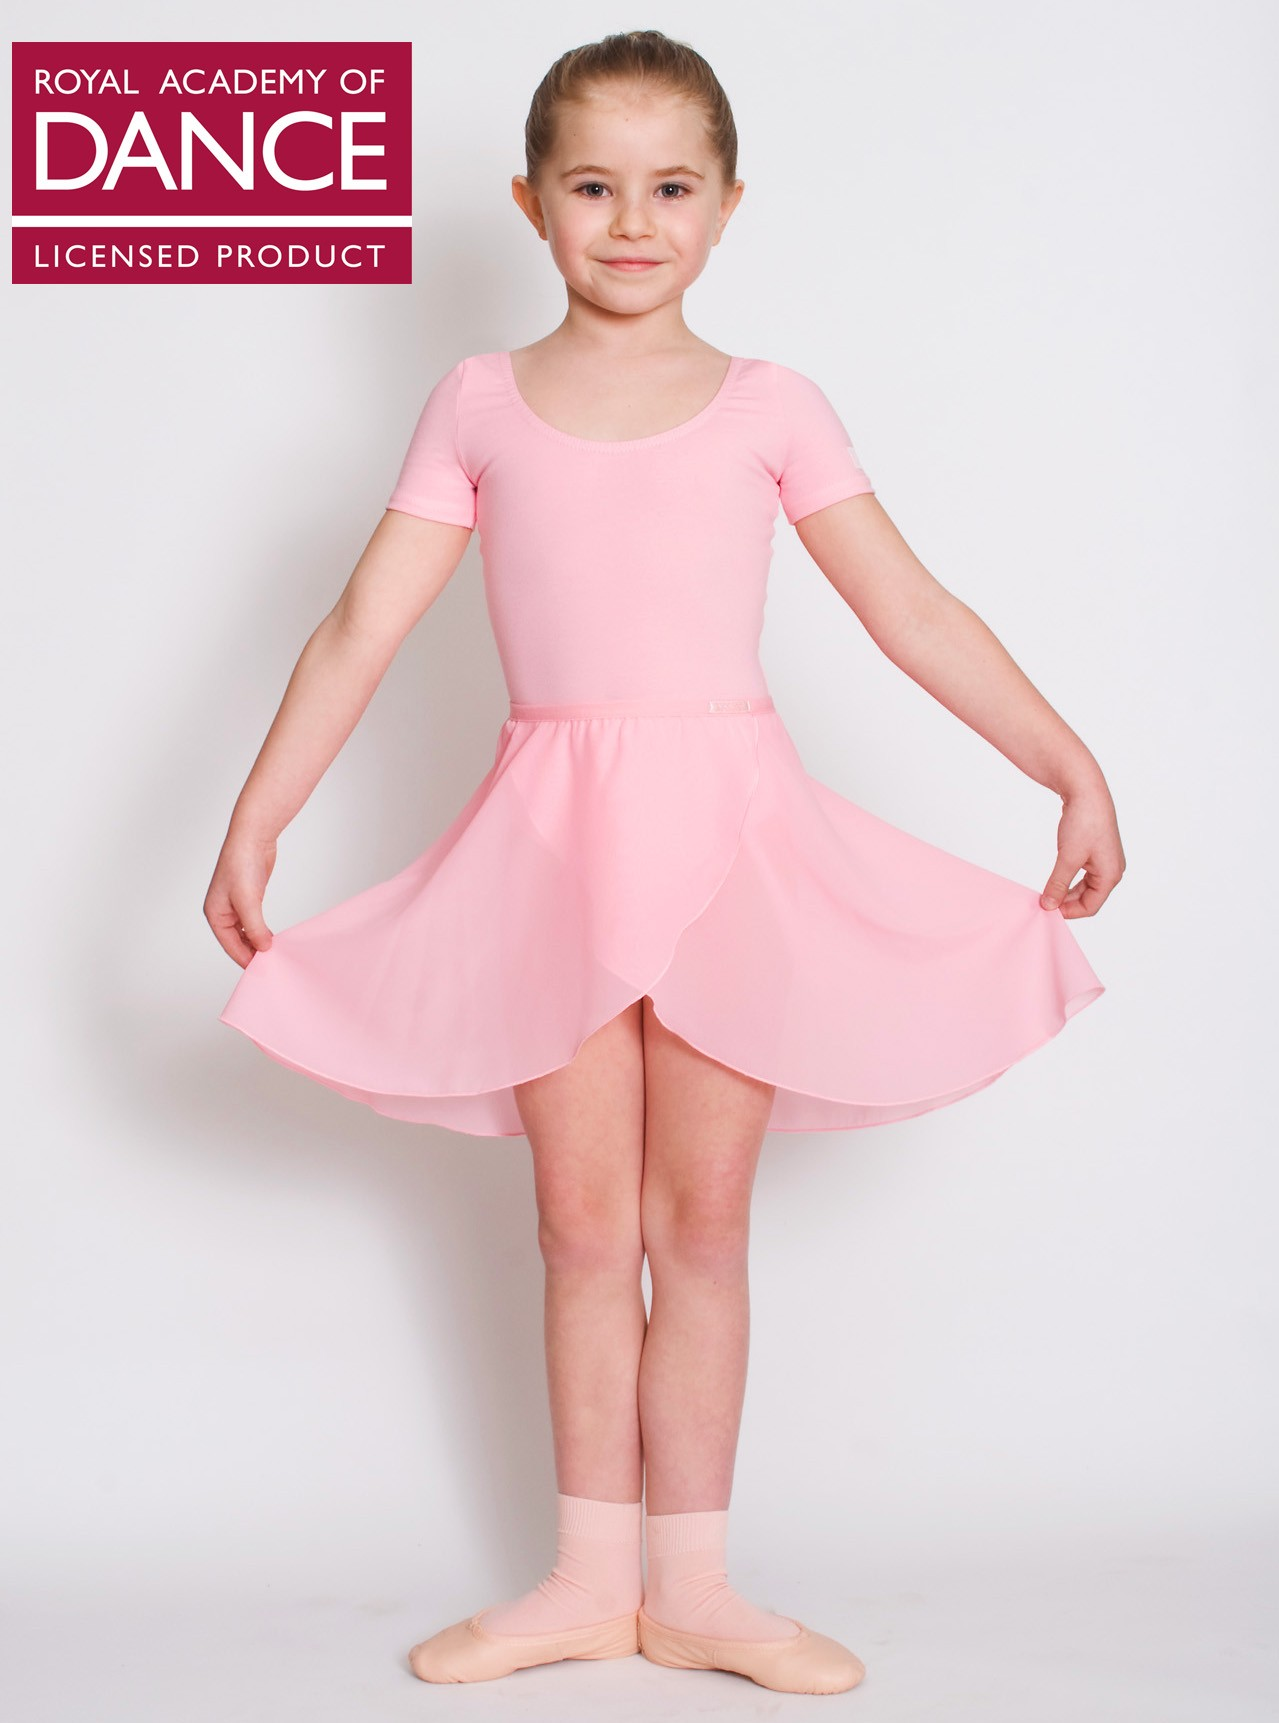 RAD Ballet Skirt with Logo approved by Royal Academy of Dance. Pink Chiffon